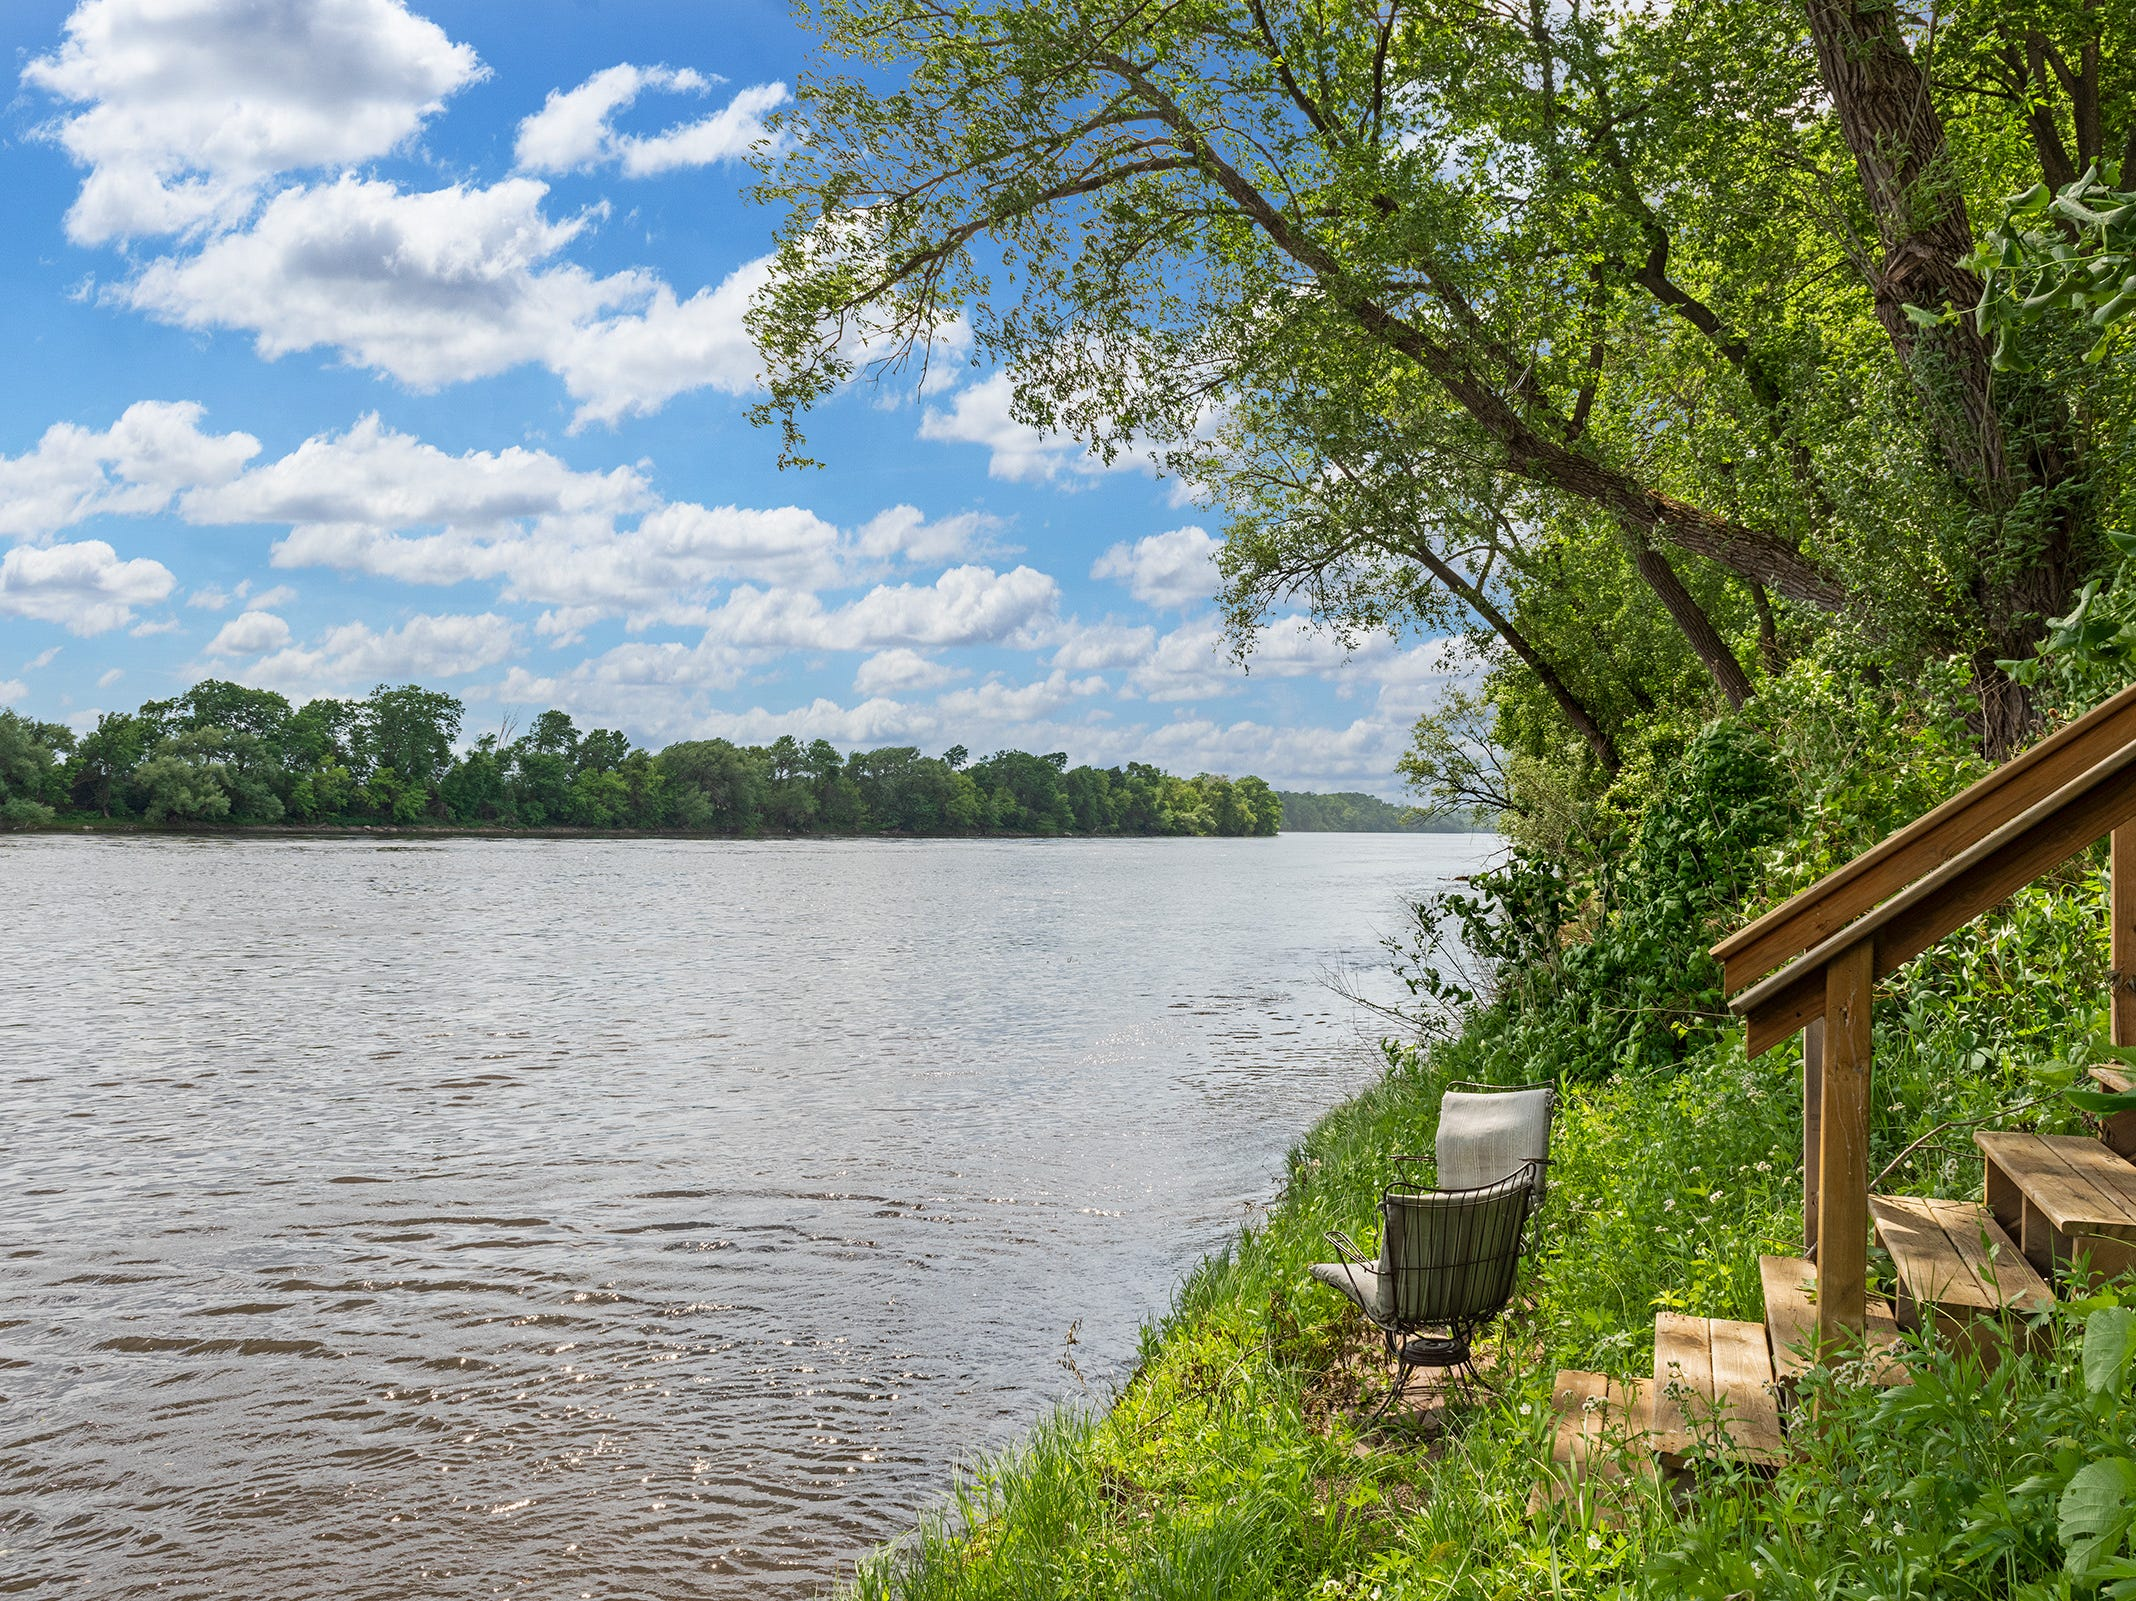 The property offers 300 feet of riverfront on the Mississippi.